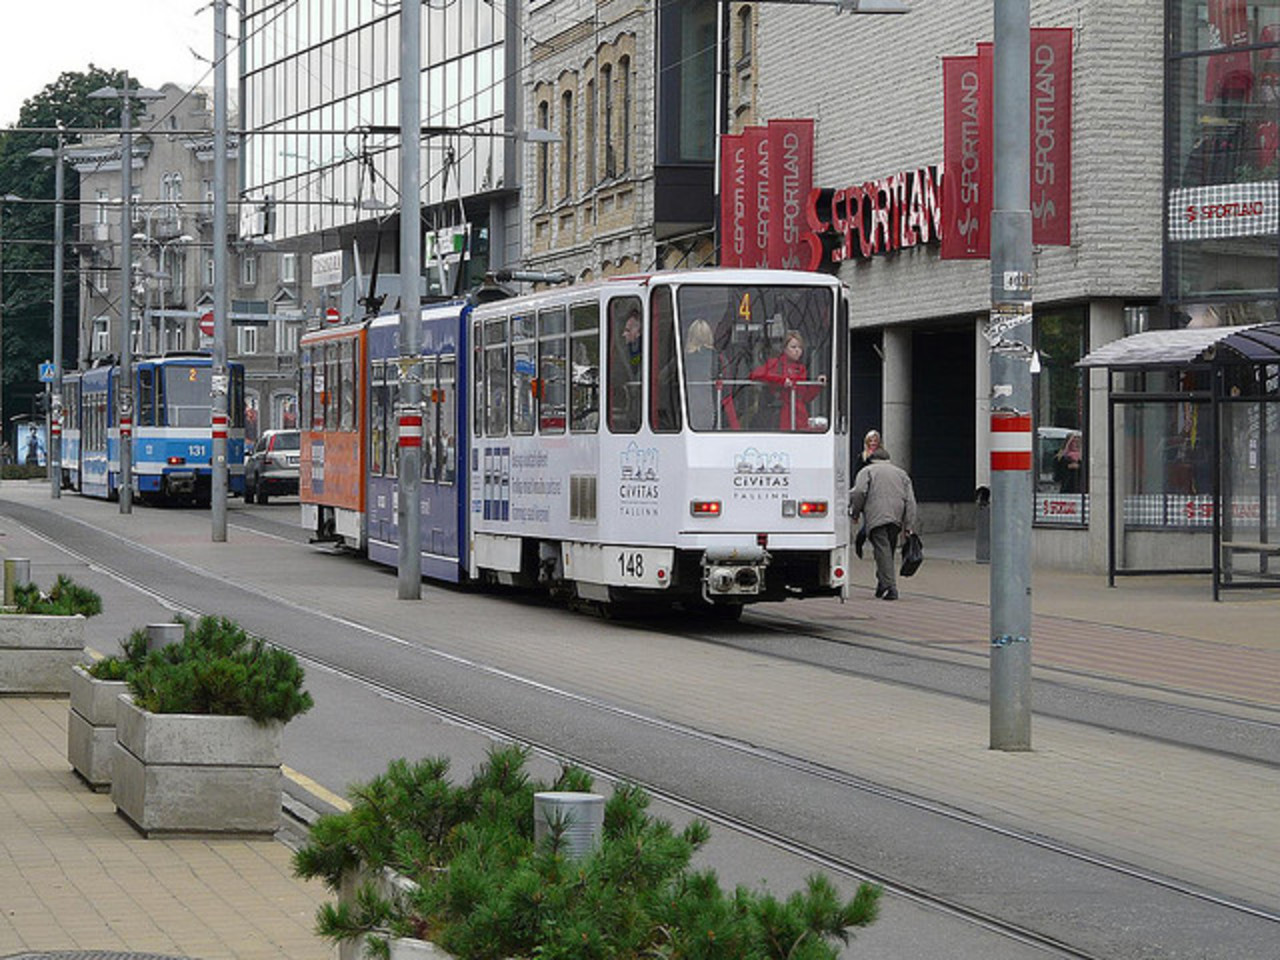 Czech Tatra tram - Tallinn Estonia | Flickr - Photo Sharing!